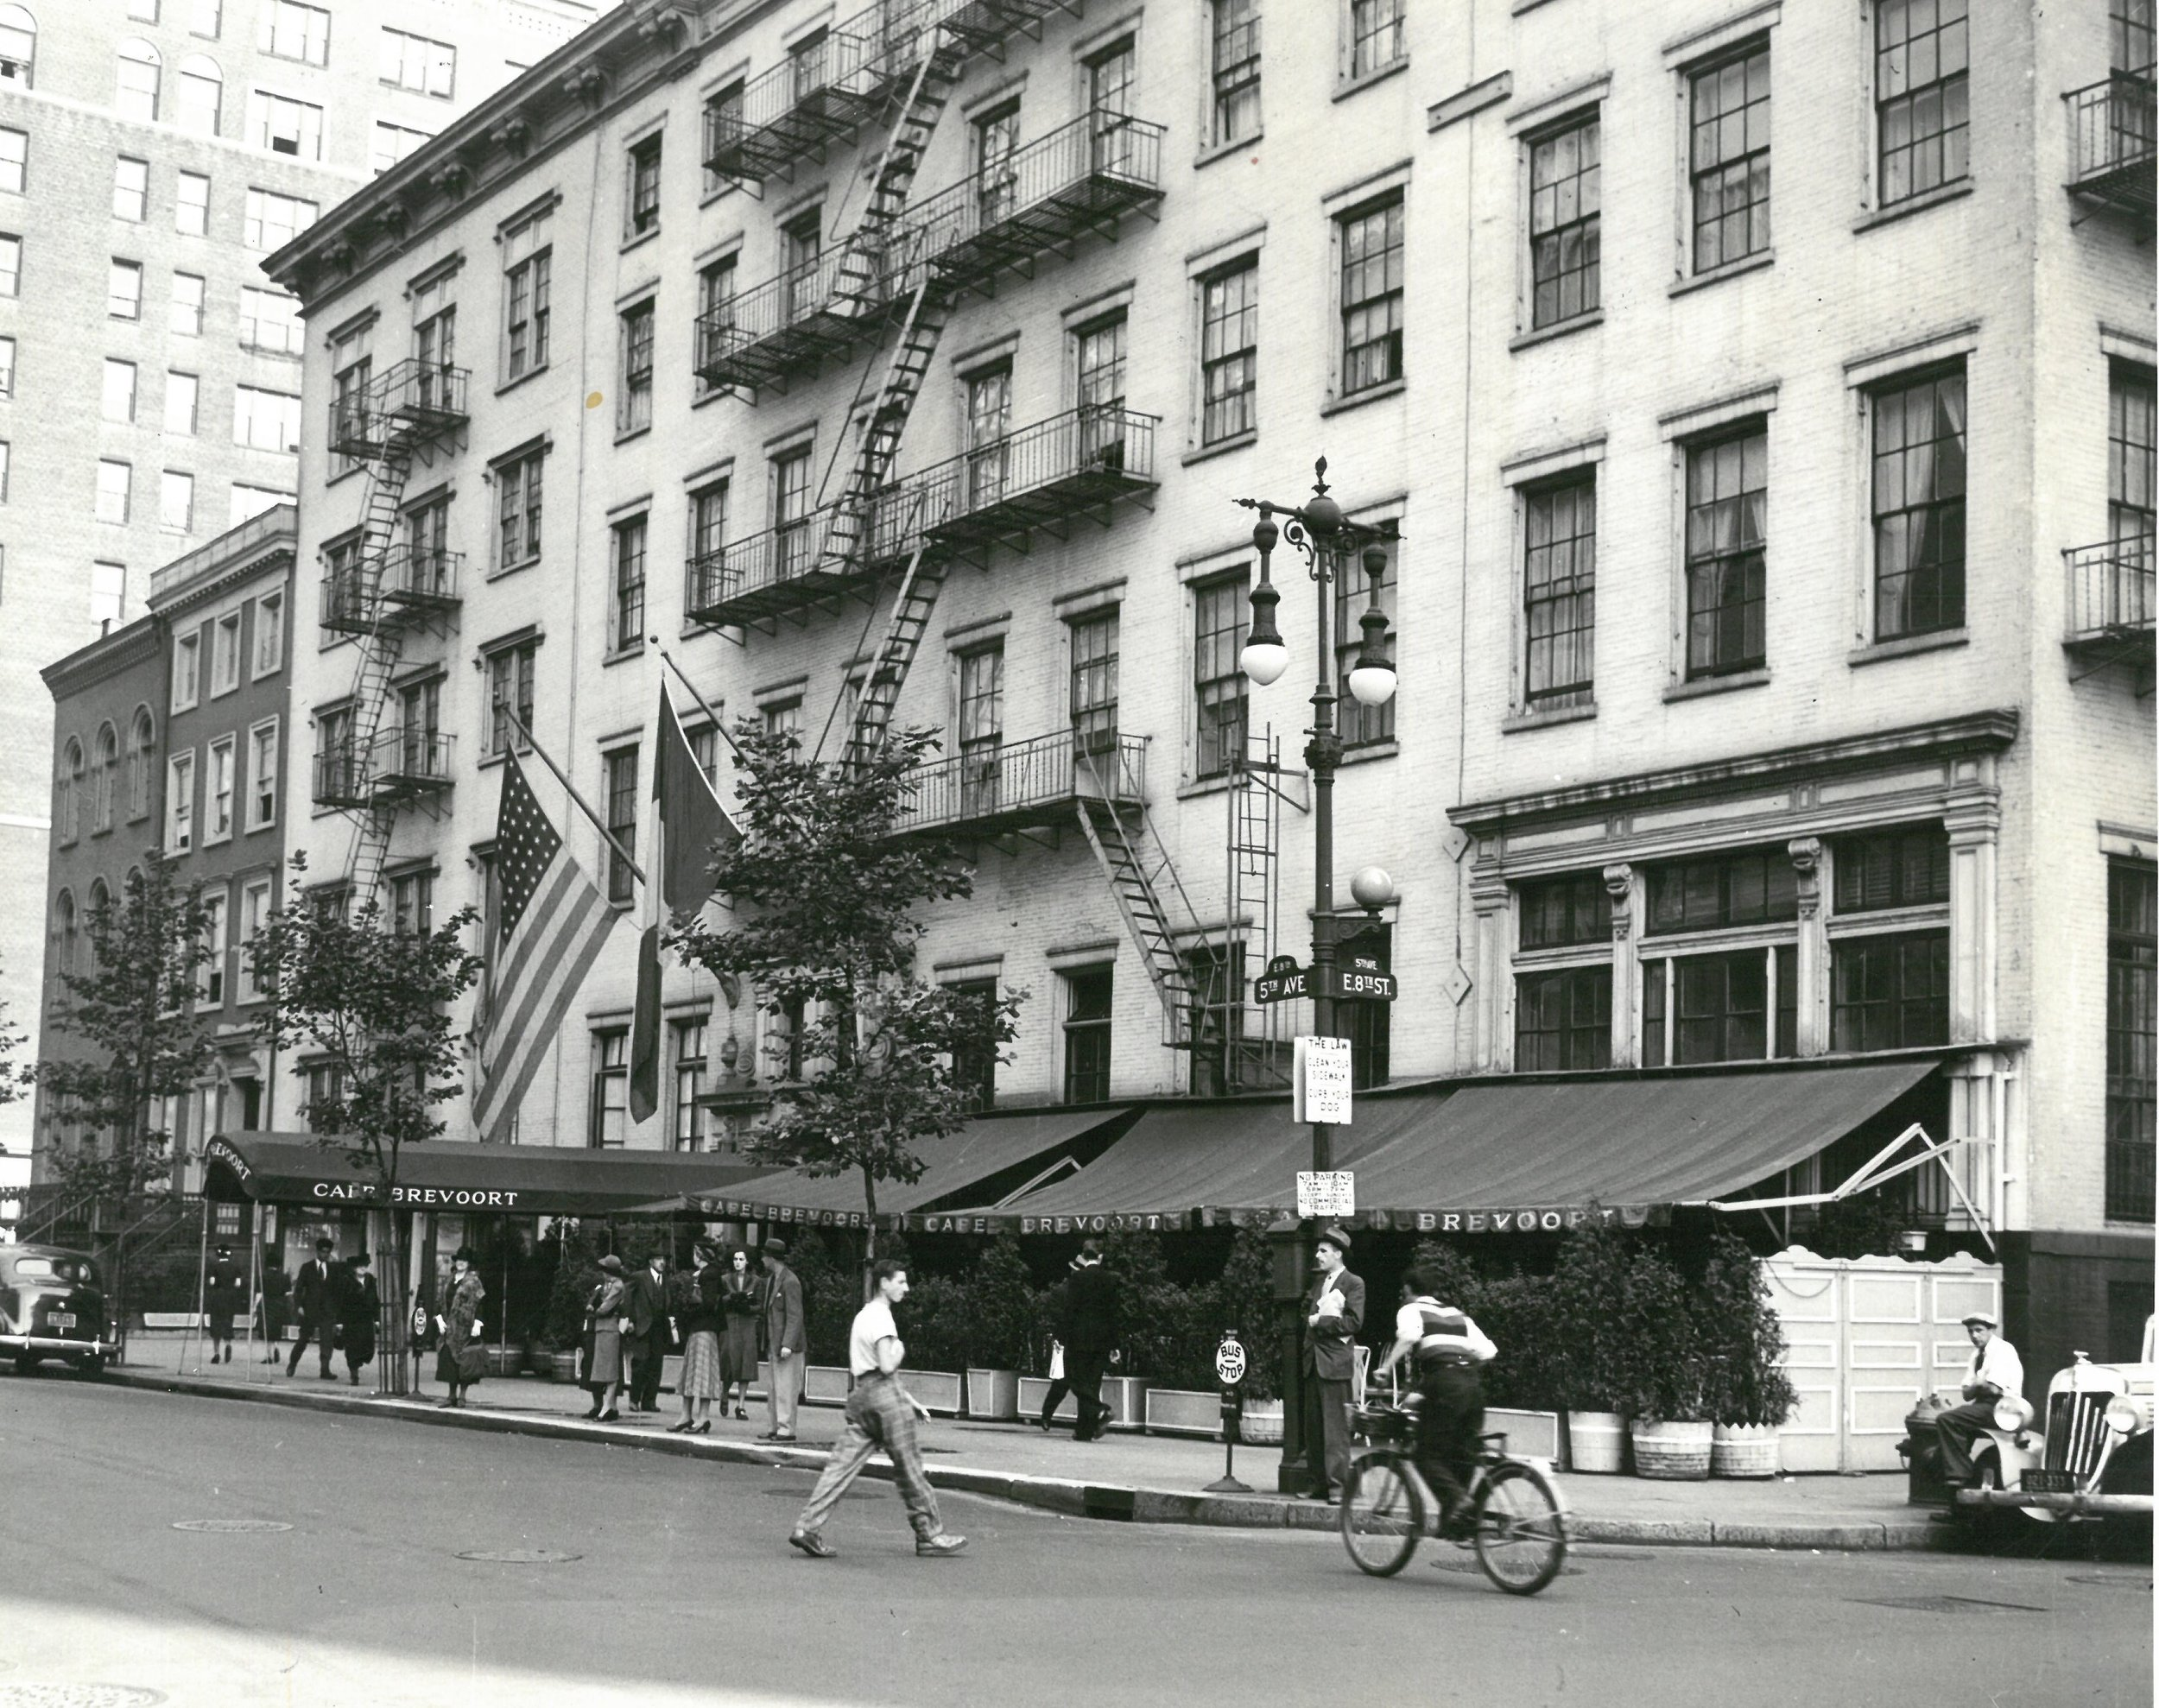 Brevoort Hotel. Date: October 17, 1938. Photographer: Eiseman. WPA-FWP Collection, 3377-15. NYC Municipal Archives.